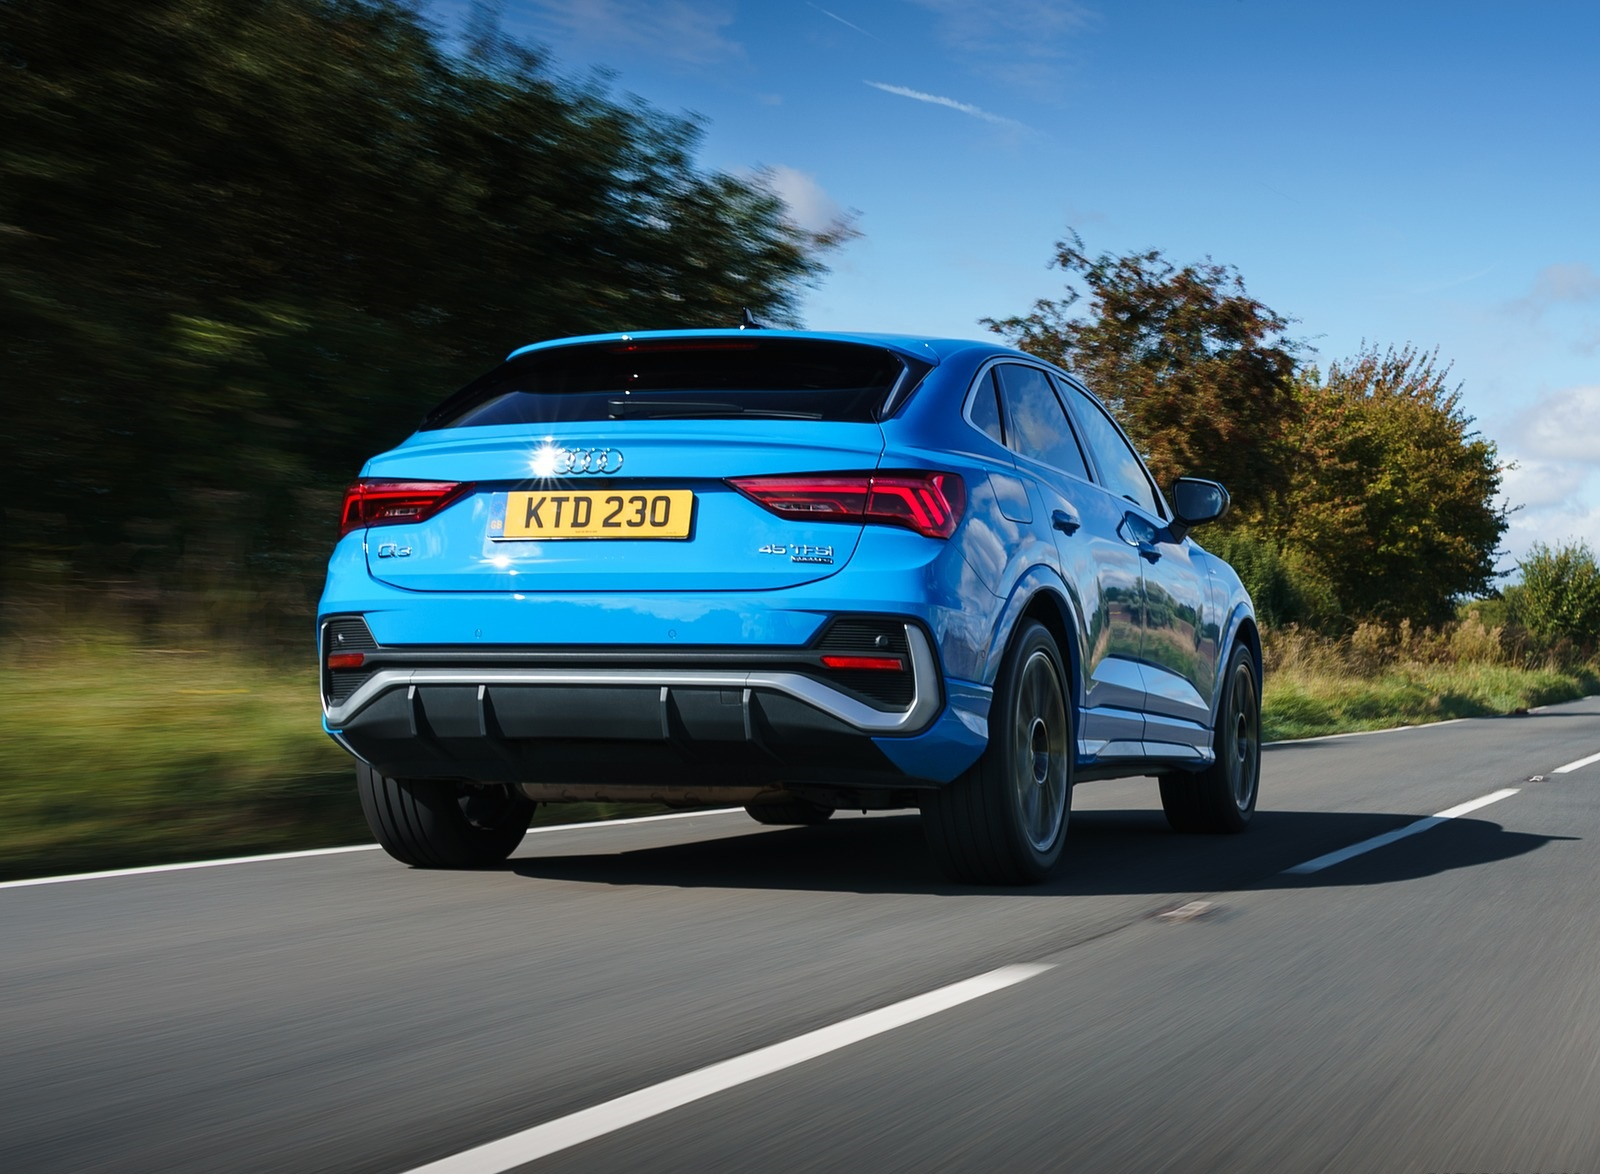 2020 Audi Q3 Sportback 45 TFSI quattro (UK-Spec) Rear Three-Quarter Wallpapers (10)